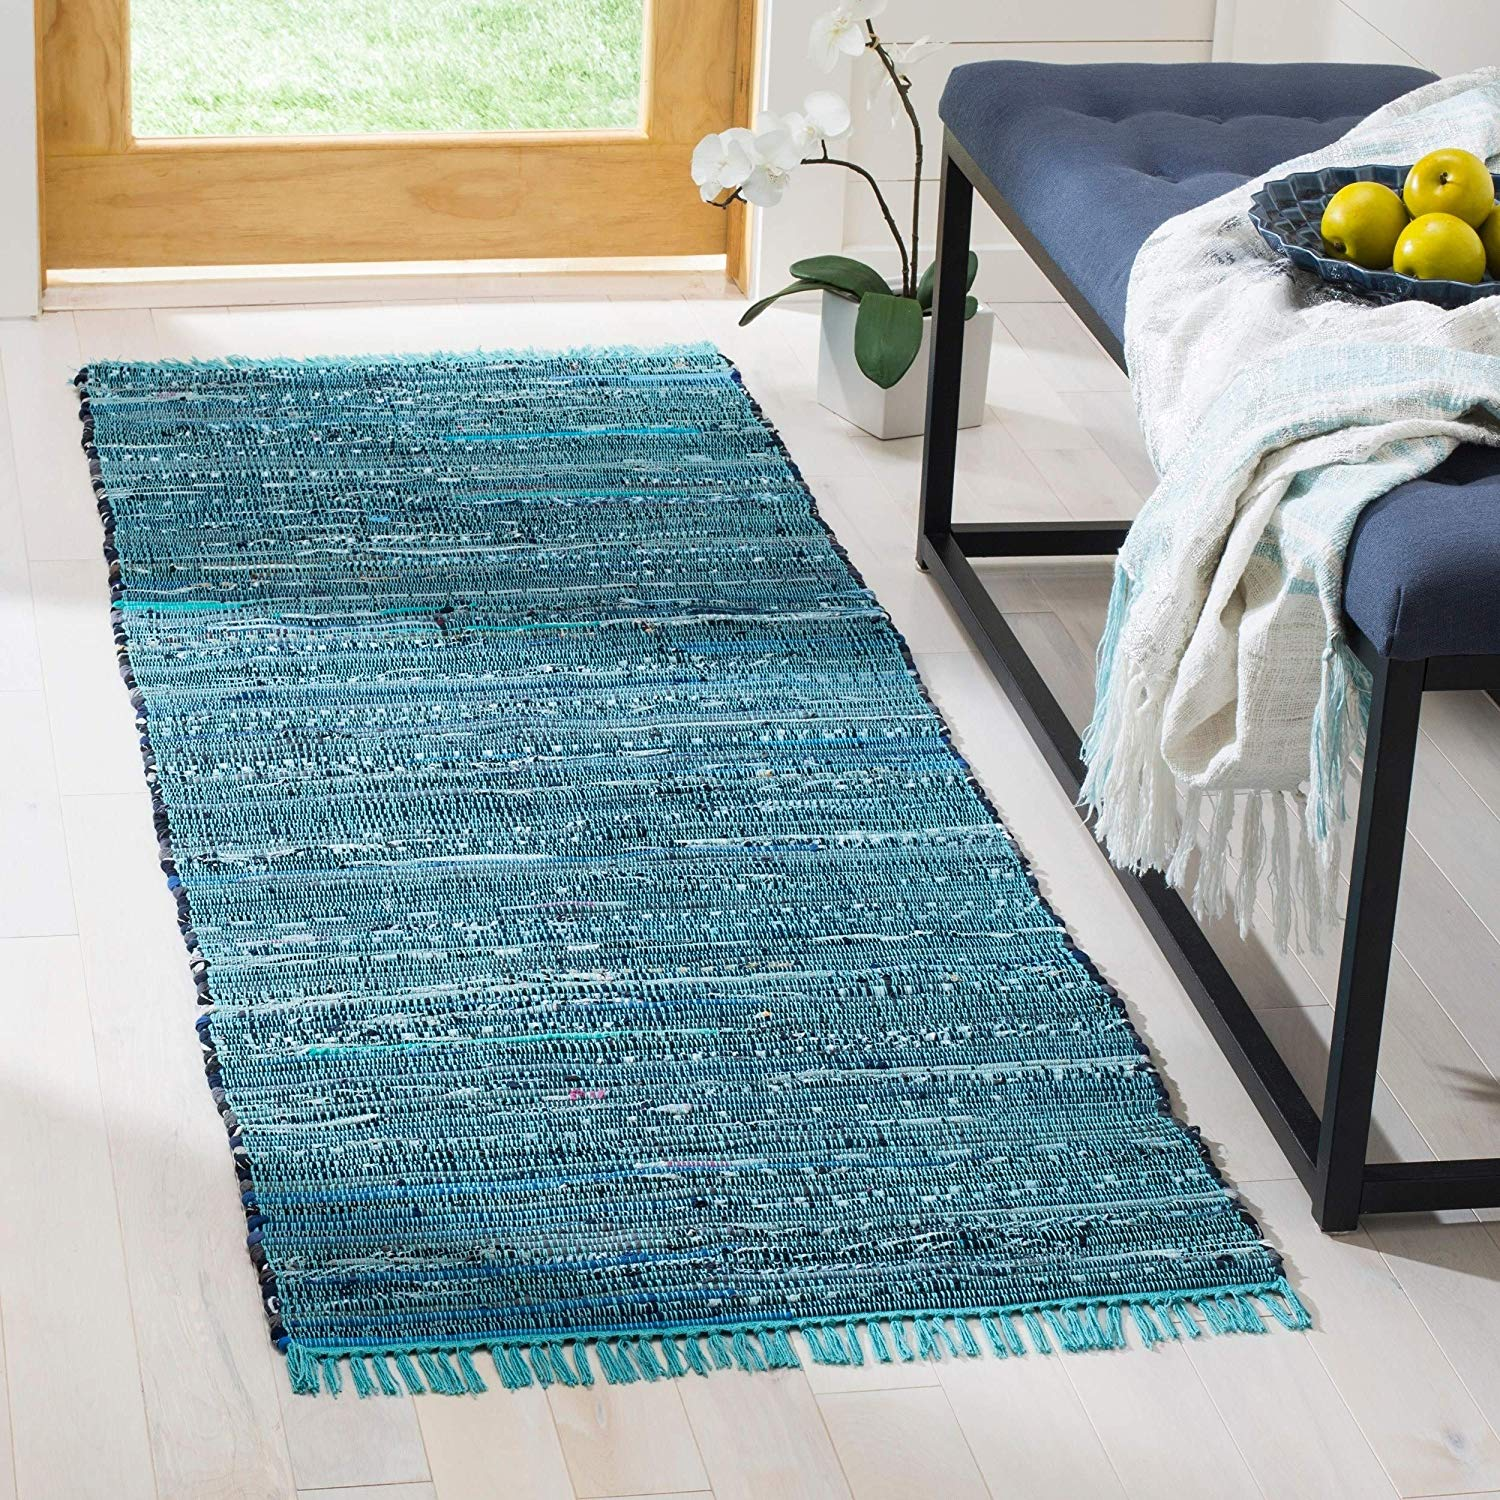 "Blue Rag Rug 2'3""x5' Ft Abstract Carpet Handmade Rectangle Shape Bathroom Entryway Kitchen Bohemian Mattress Eclectic Indoor Accent Rug Flatweave"